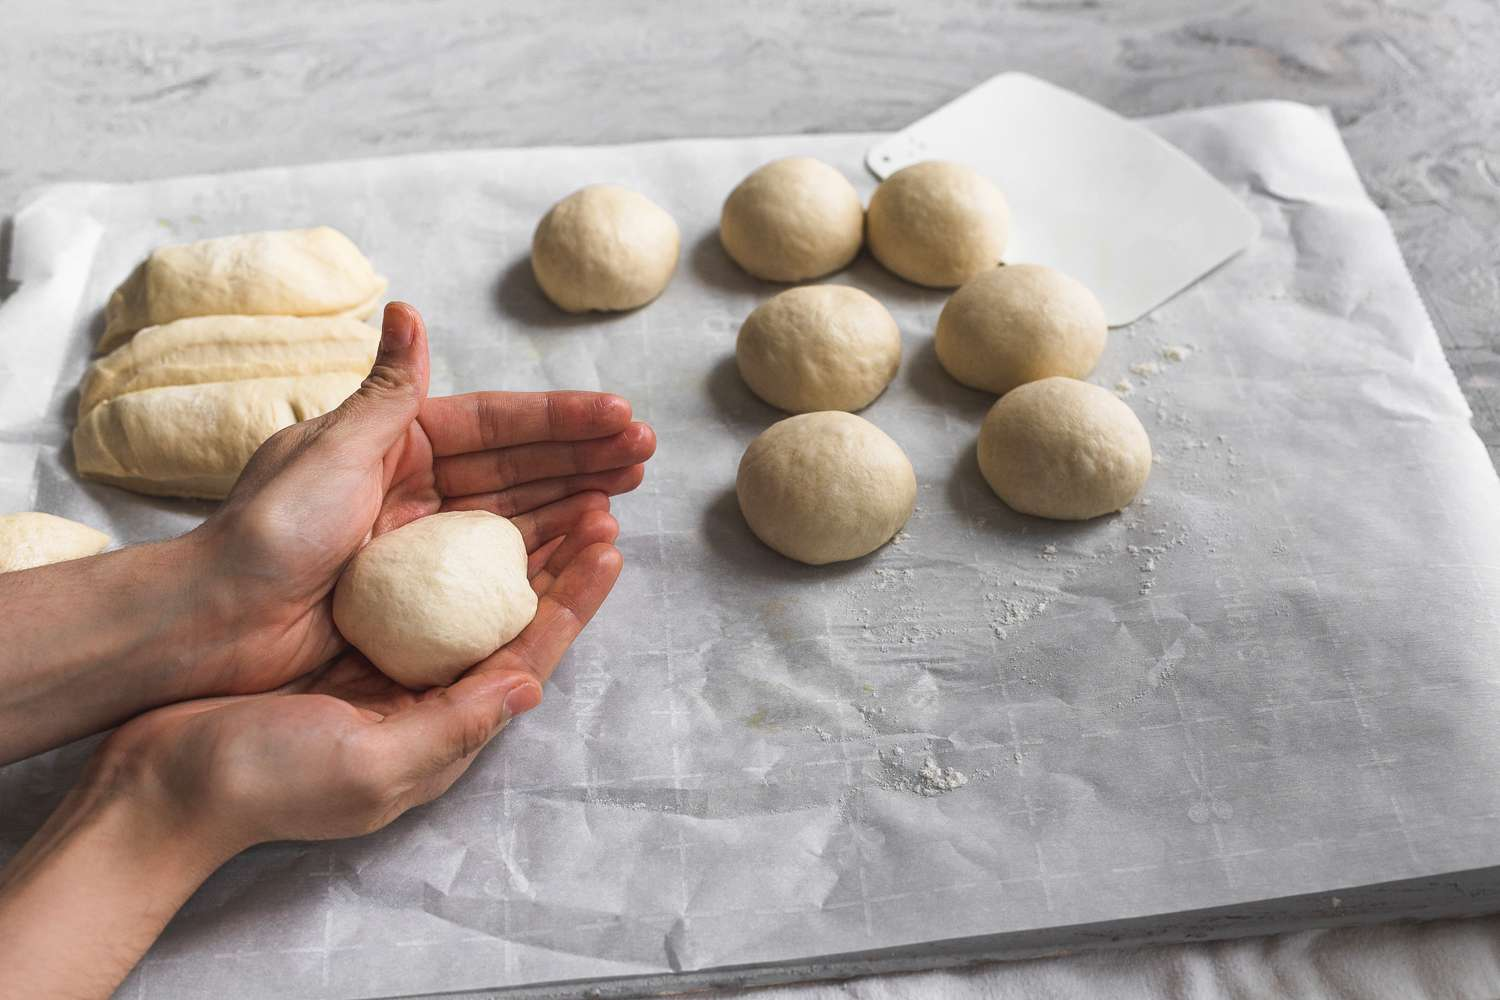 small balls of dough formed with hands